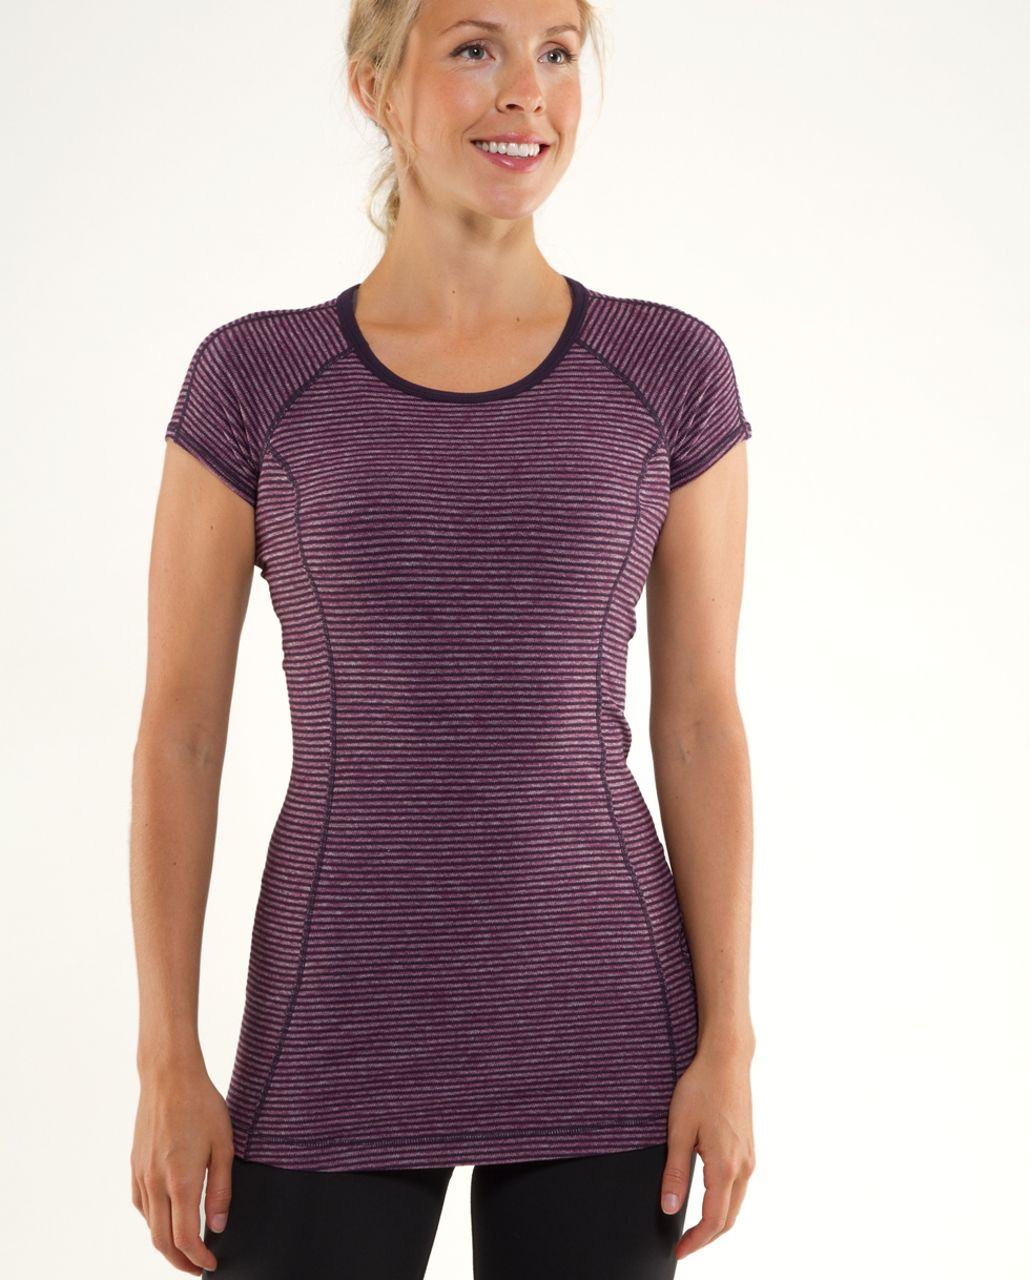 Lululemon Run:  Turn Around Short Sleeve - Black Swan Heathered Plum Mini Check /  Reflective Sparkle Splatter